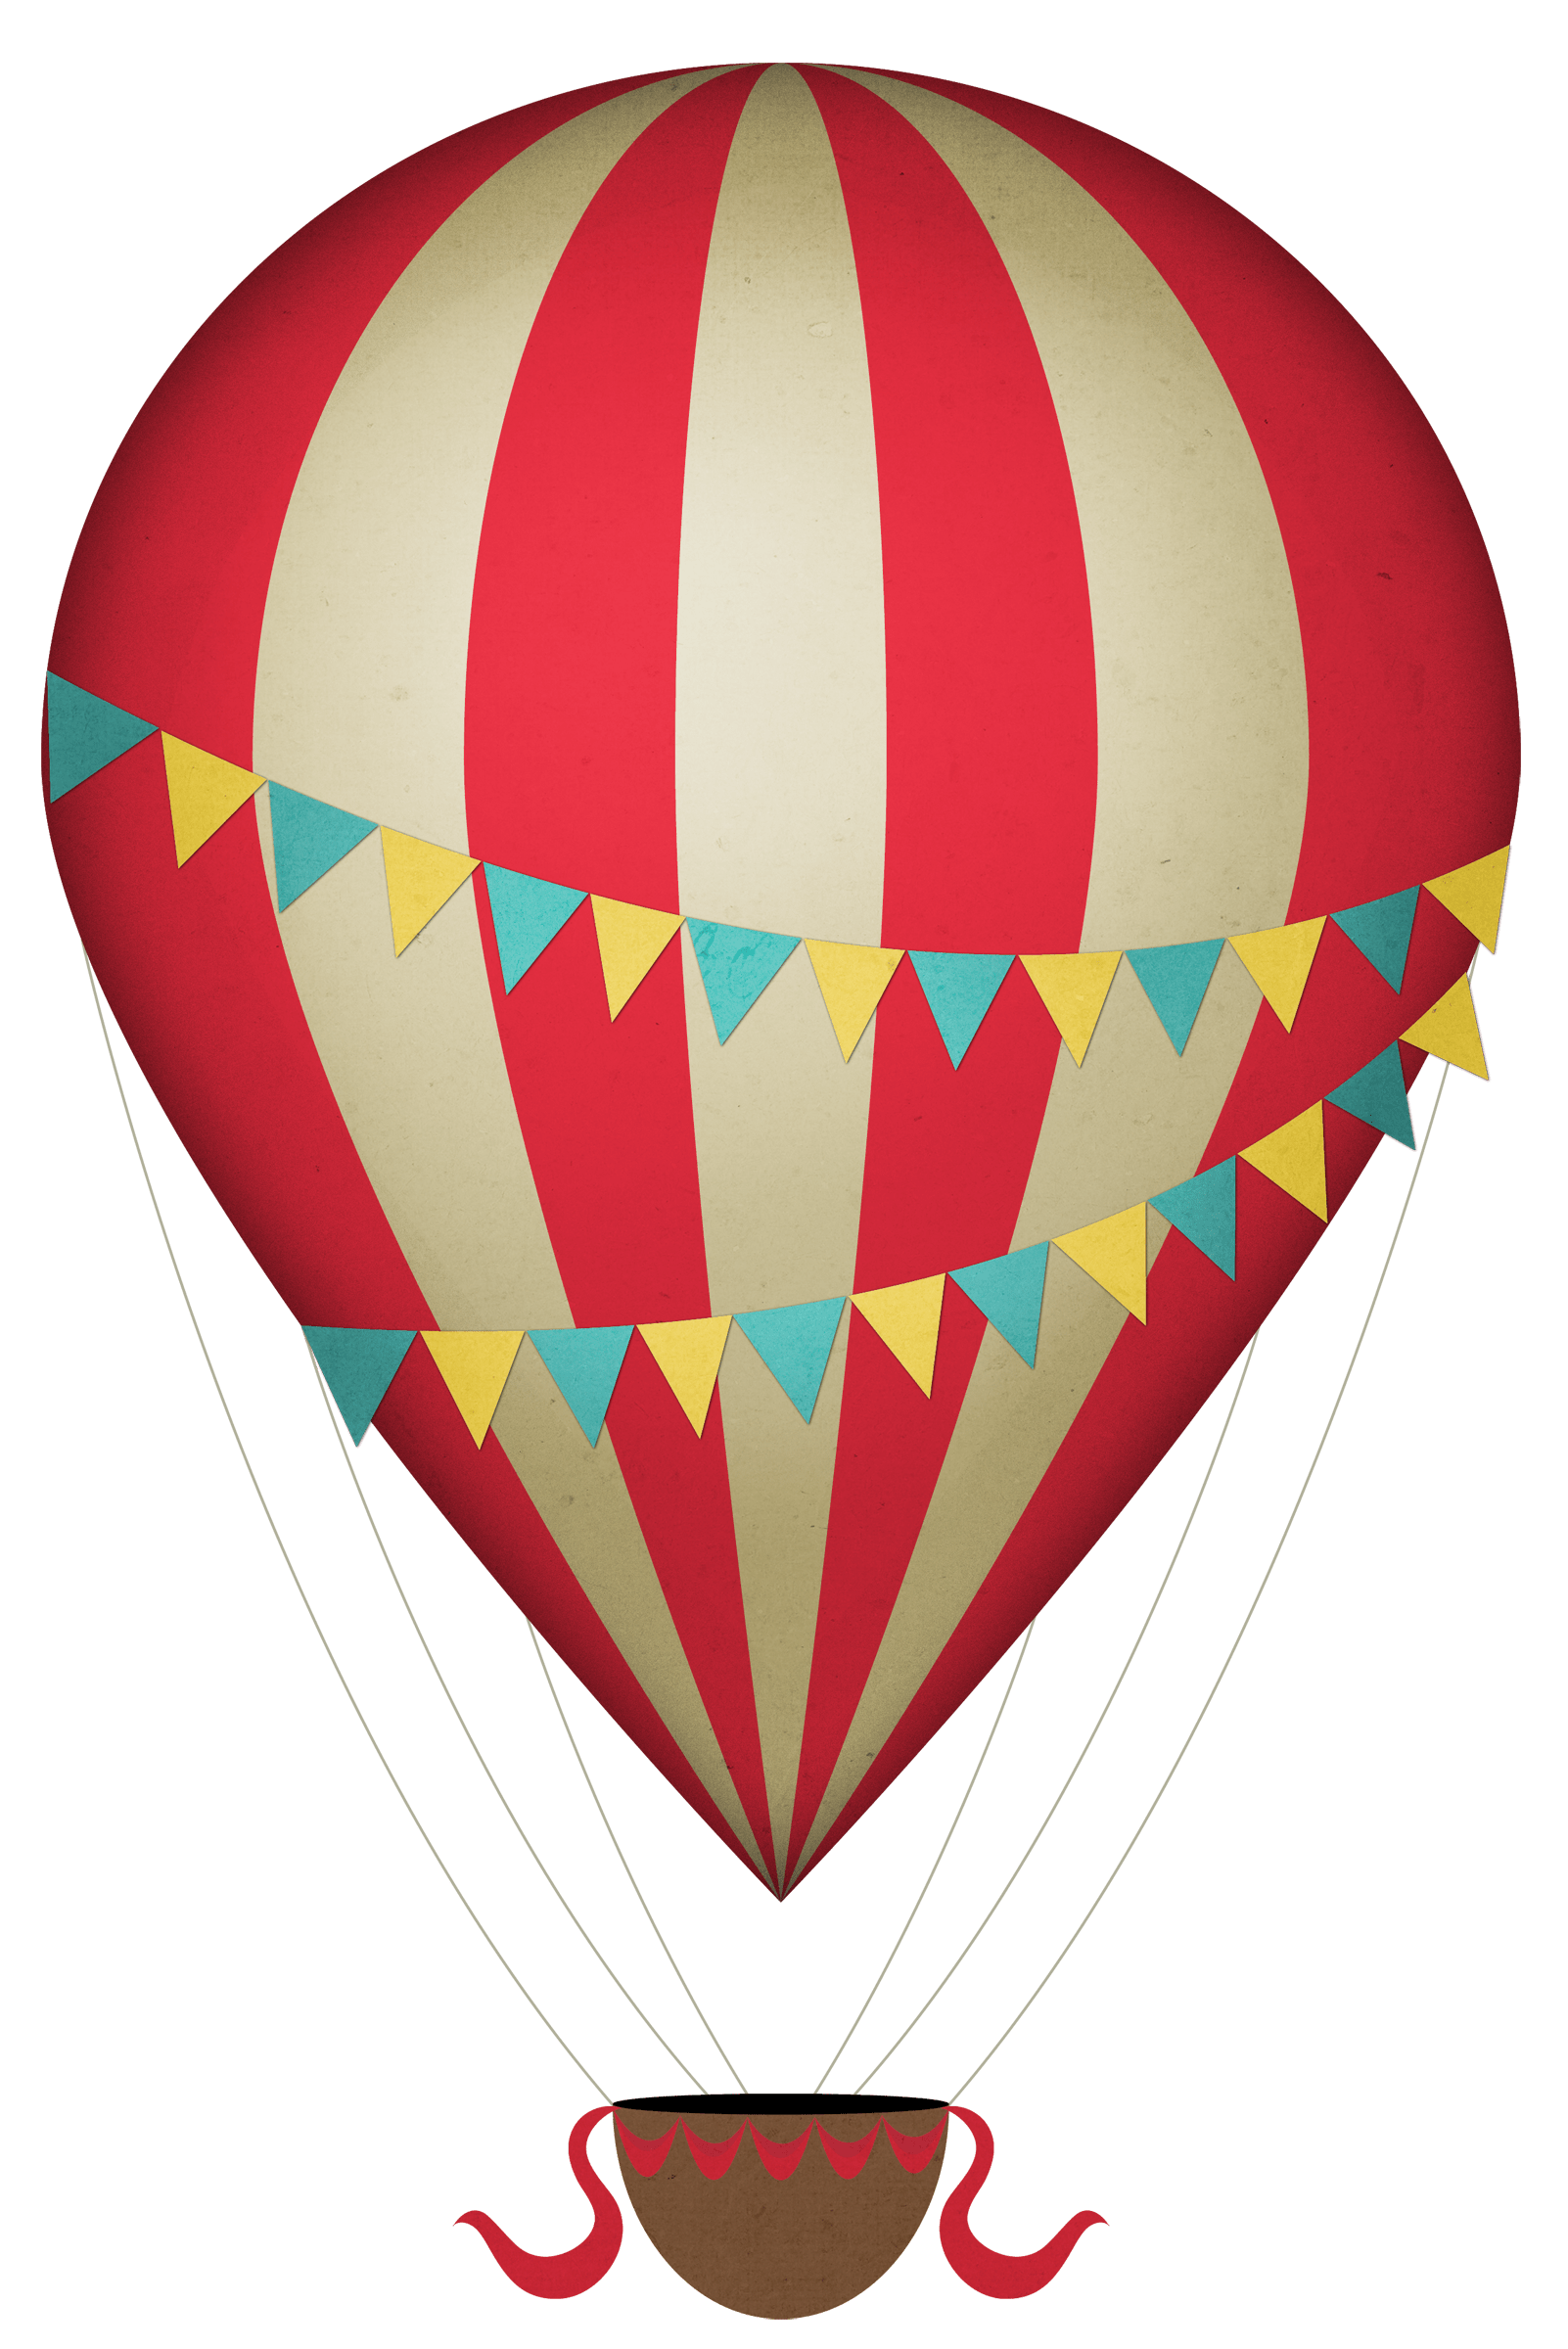 Hot air balloon png. Vintage clipart transparent stickpng